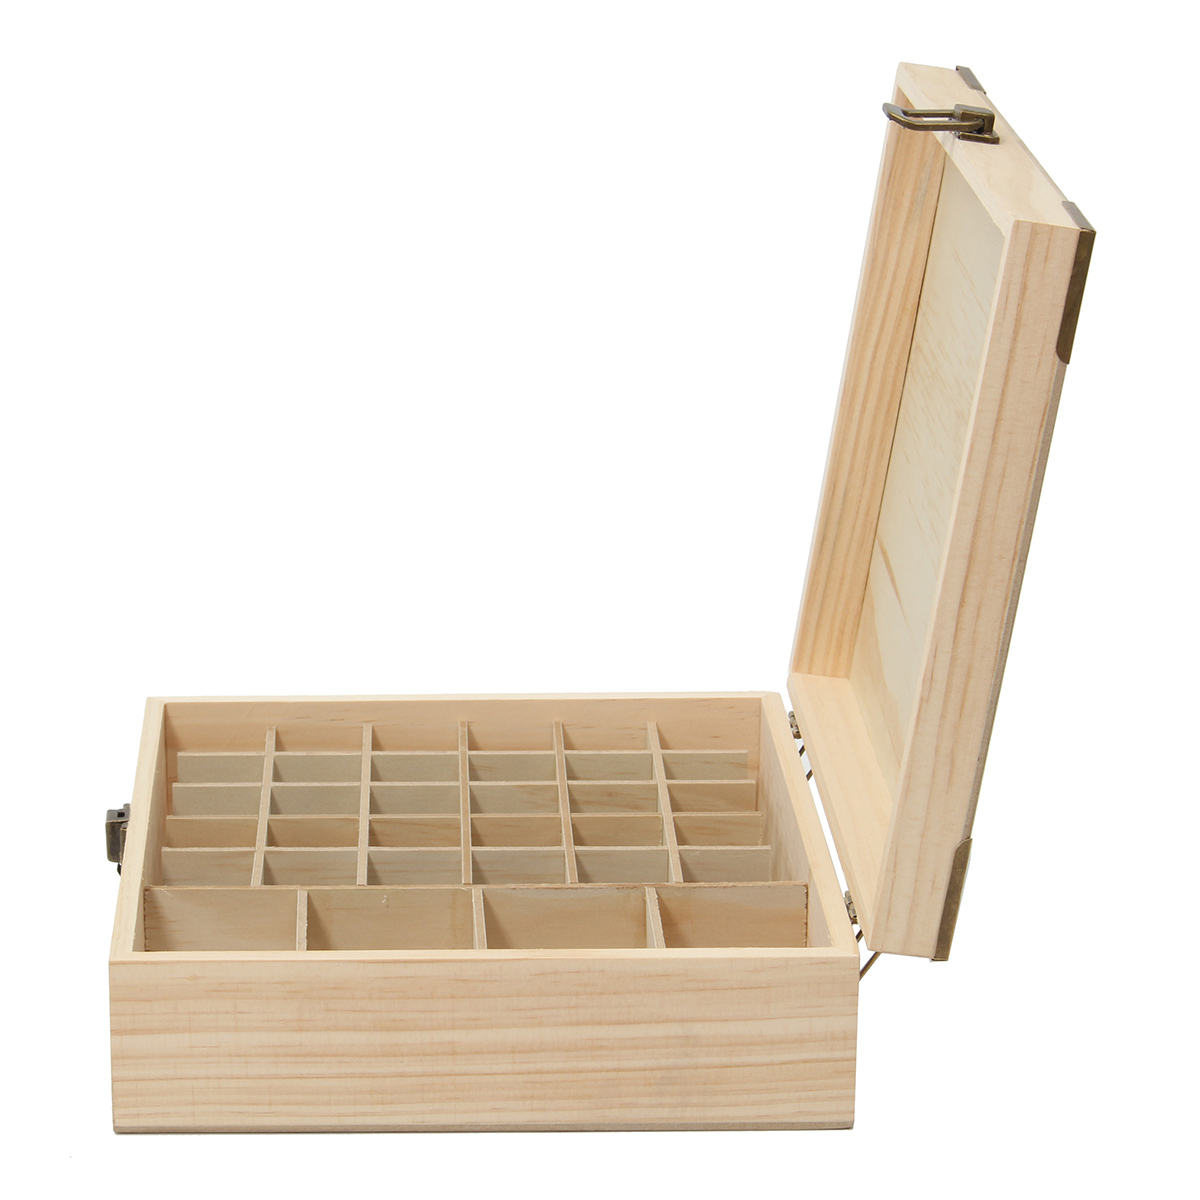 34 Grids Wooden Essential Oil Storage Container Box Case Perfume Essence Liquid Bottle Organizer